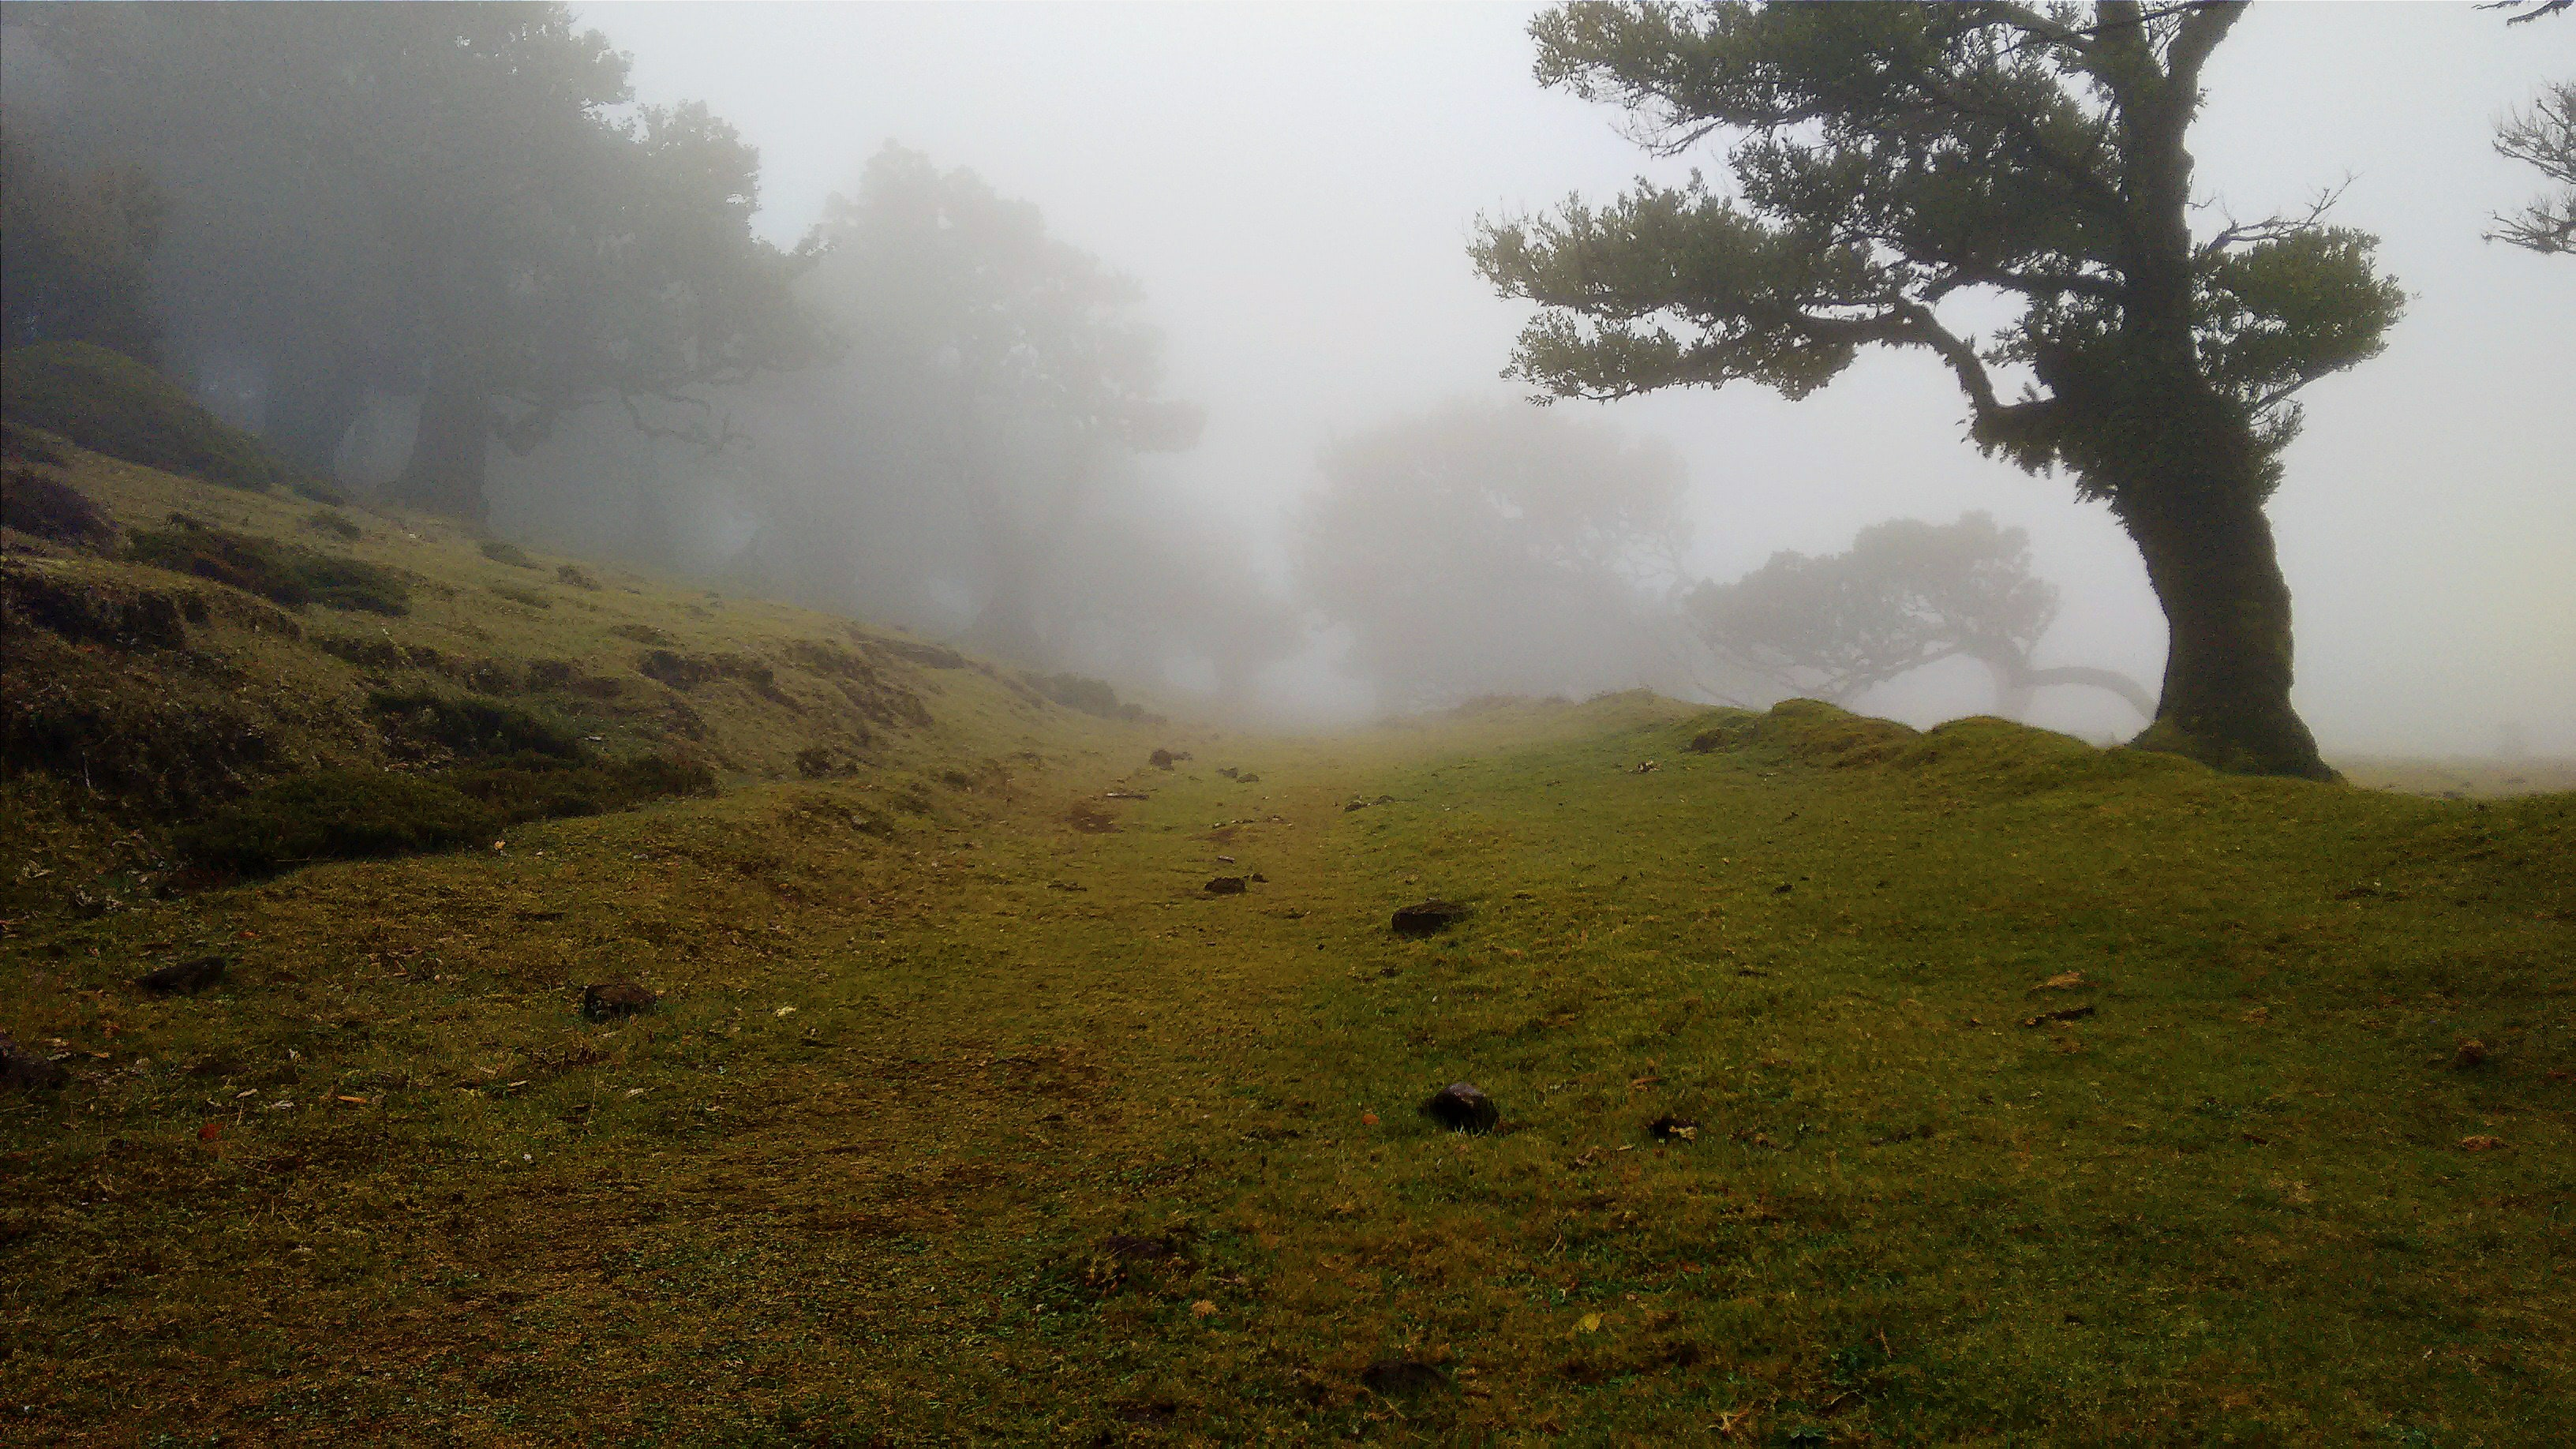 green grass field surrounded by fogs